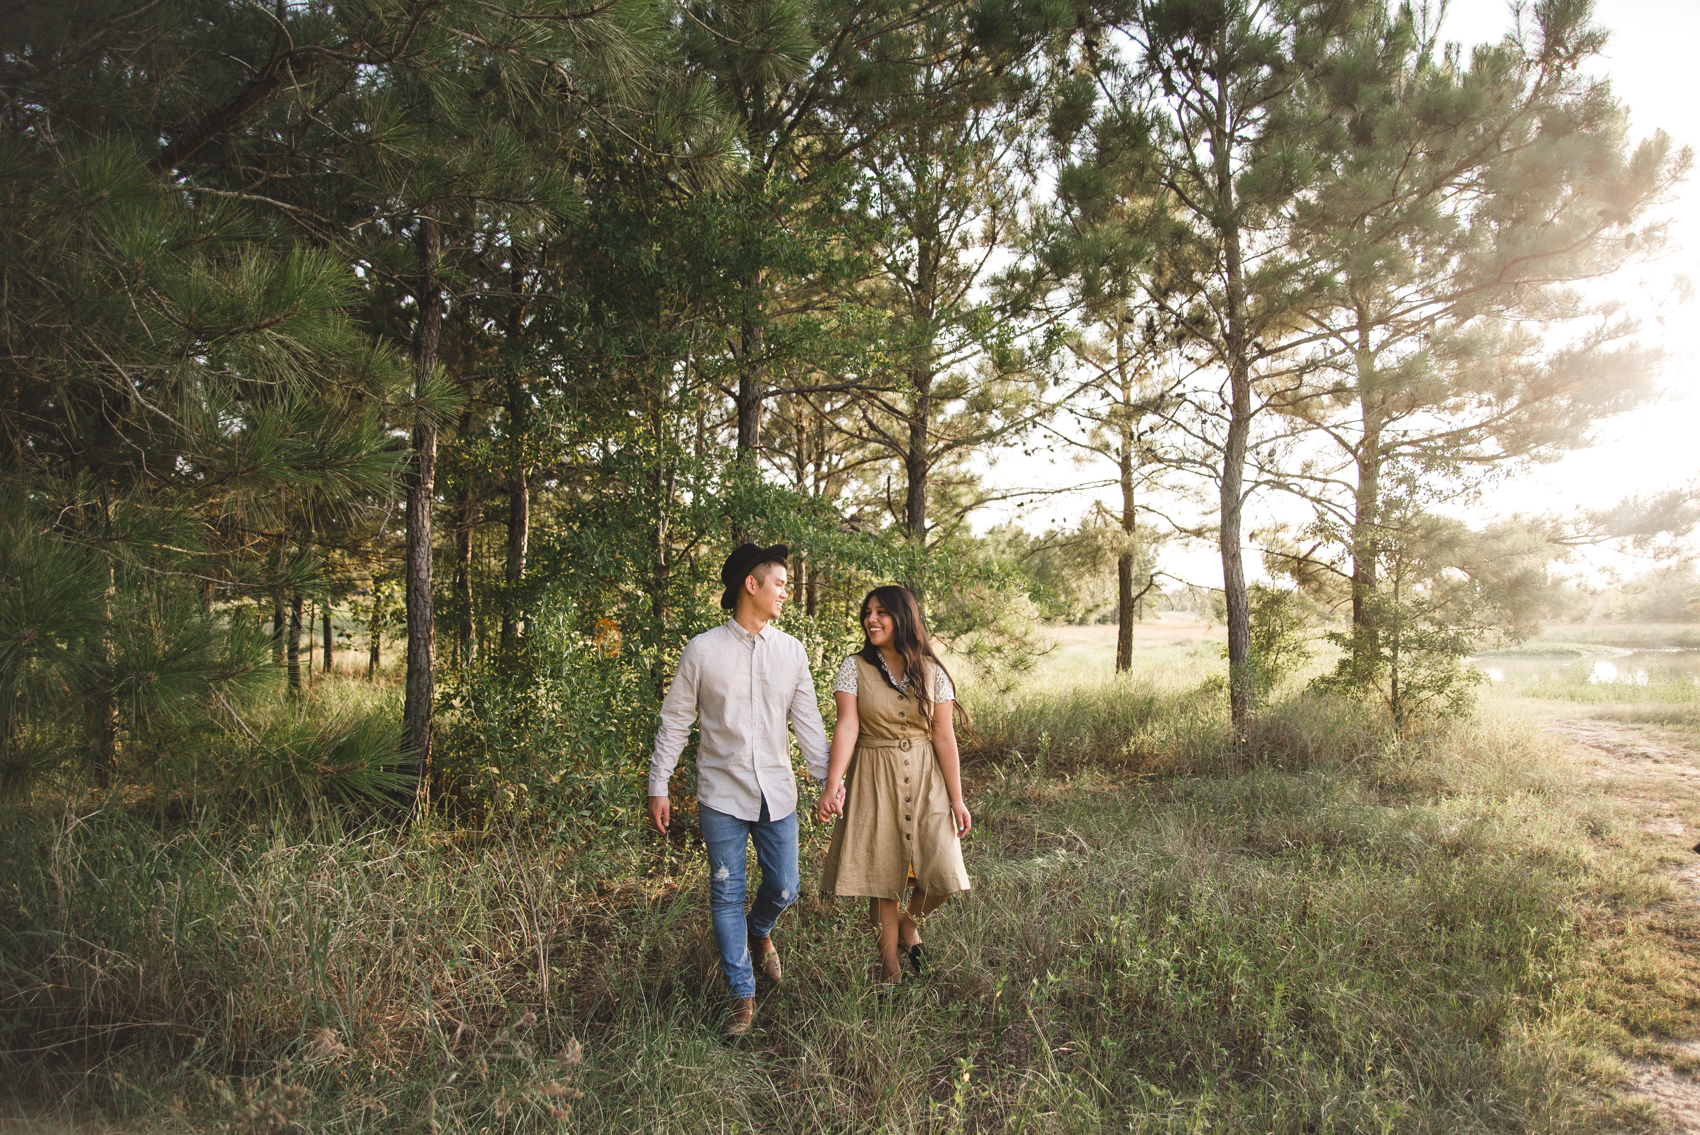 katy texas engagement session houston austin outdoor engagement session sunset inez lara photography best wedding colorado rockies elopment love destination wedding photgrapher in asian wedding agave wedding venuetexas creative adventurous